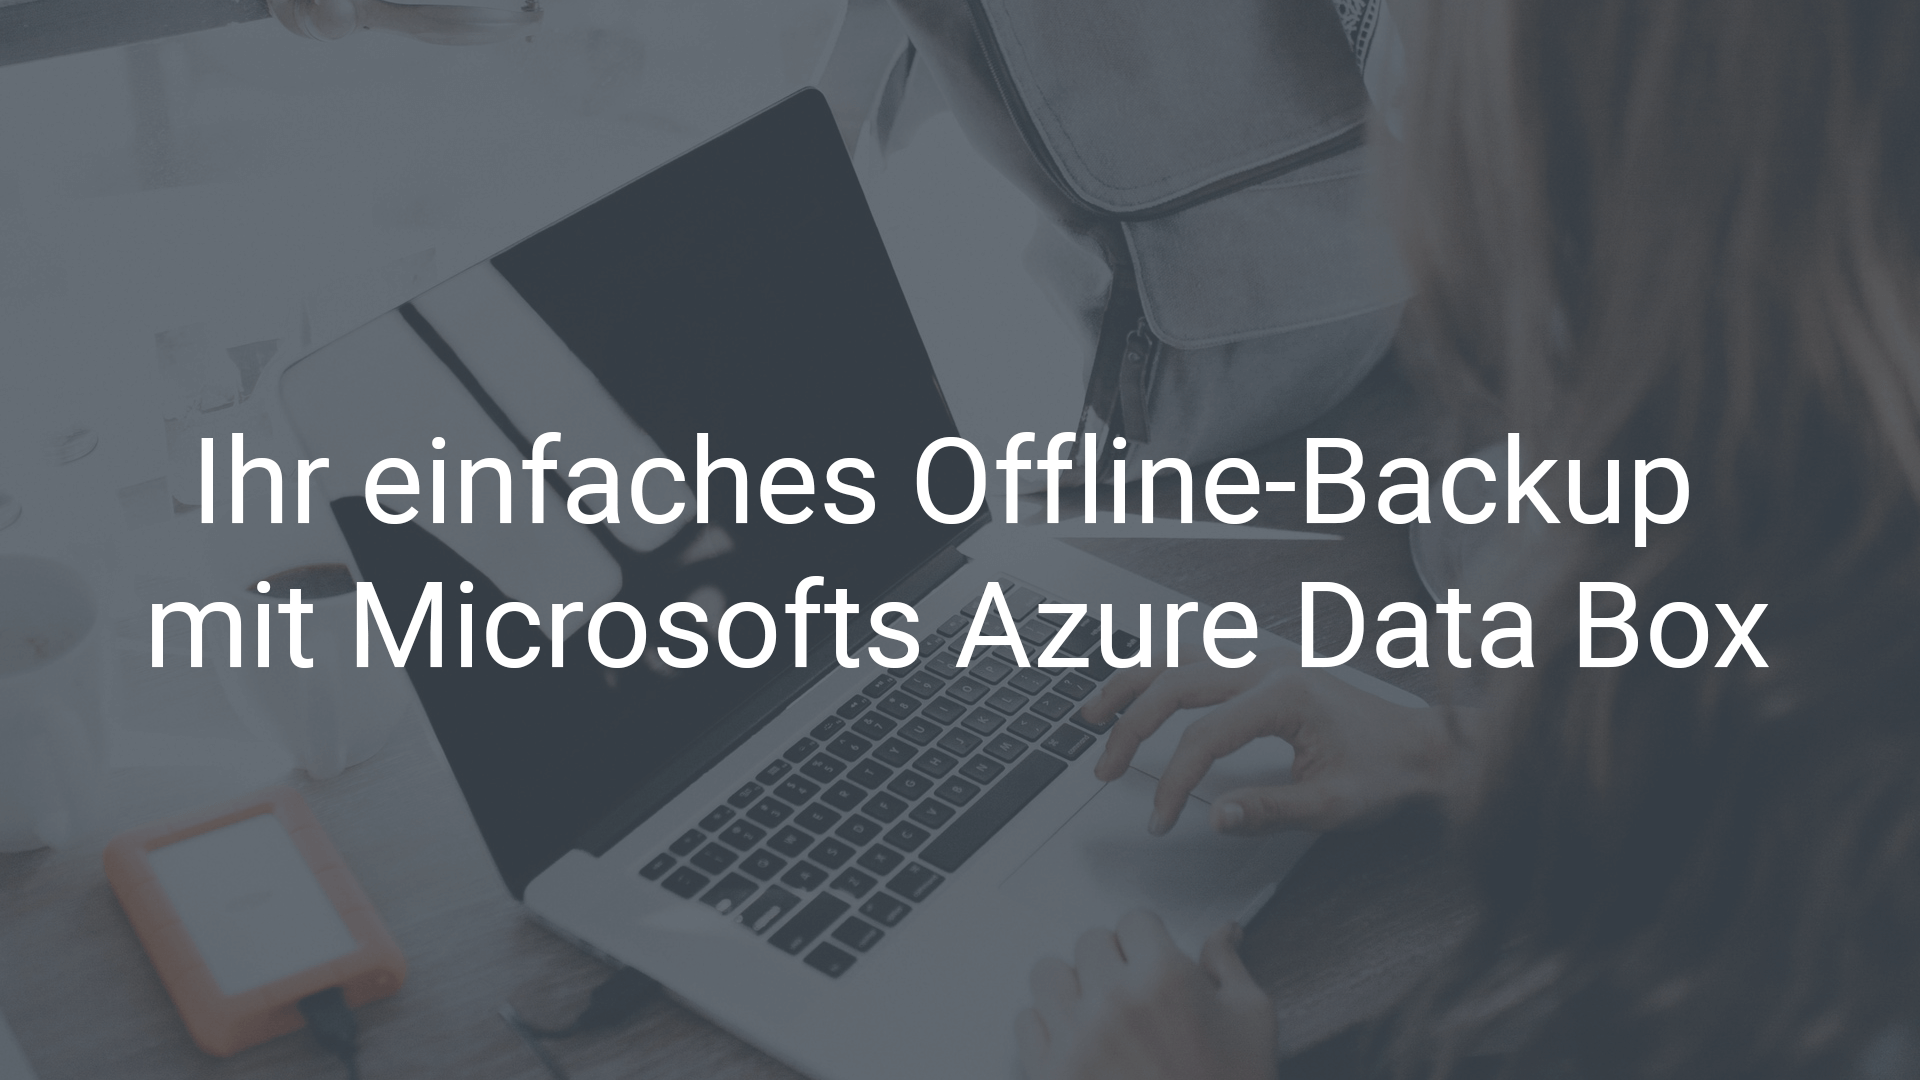 Offline-Backup-mit-Microsoft-Azure-Data-Box